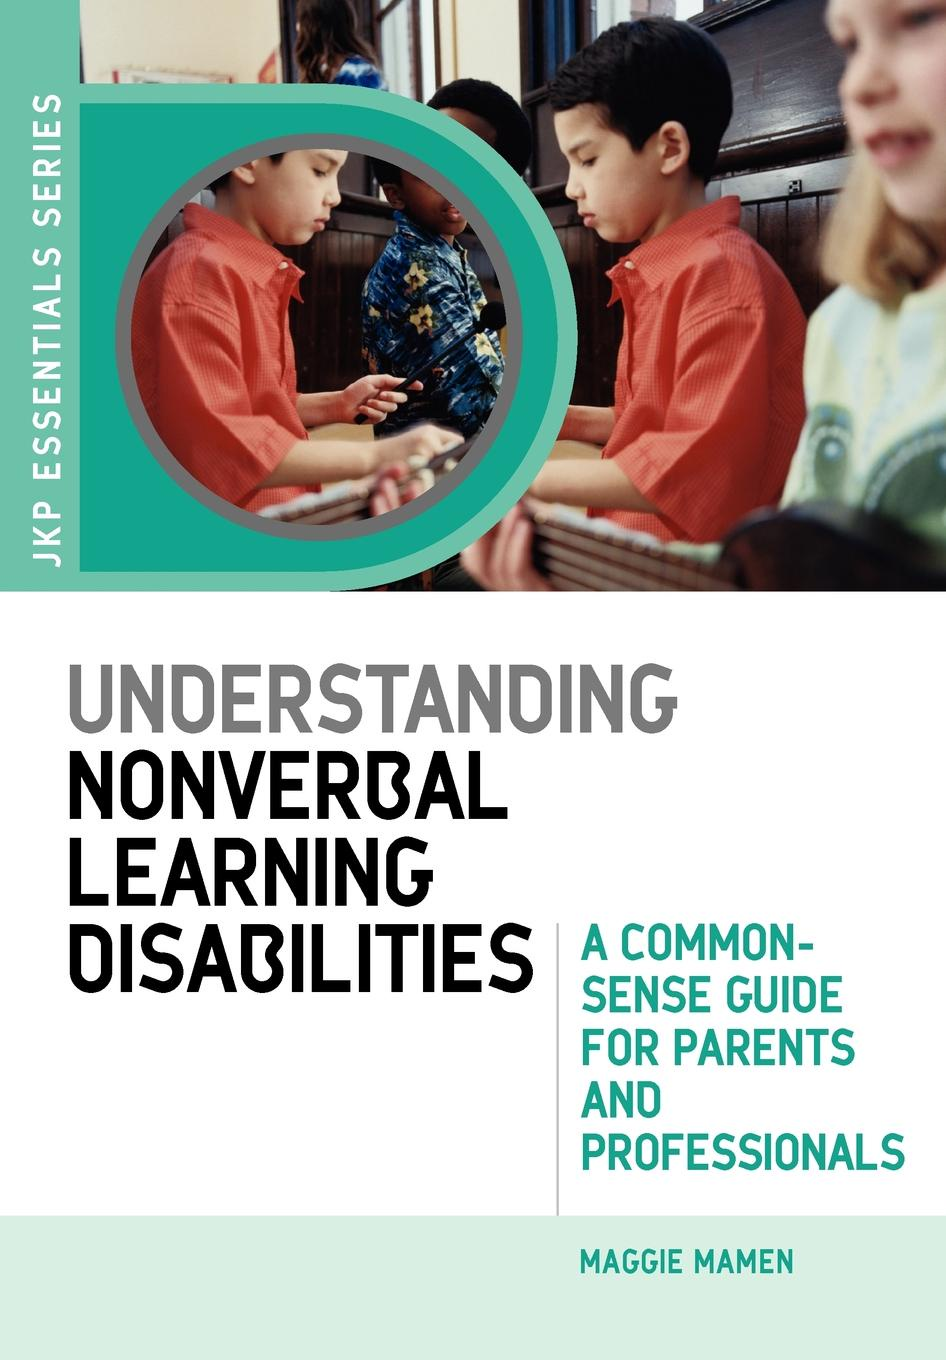 Maggie Mamen Understanding Nonverbal Learning Disabilities. A Common-Sense Guide for Parents and Professionals